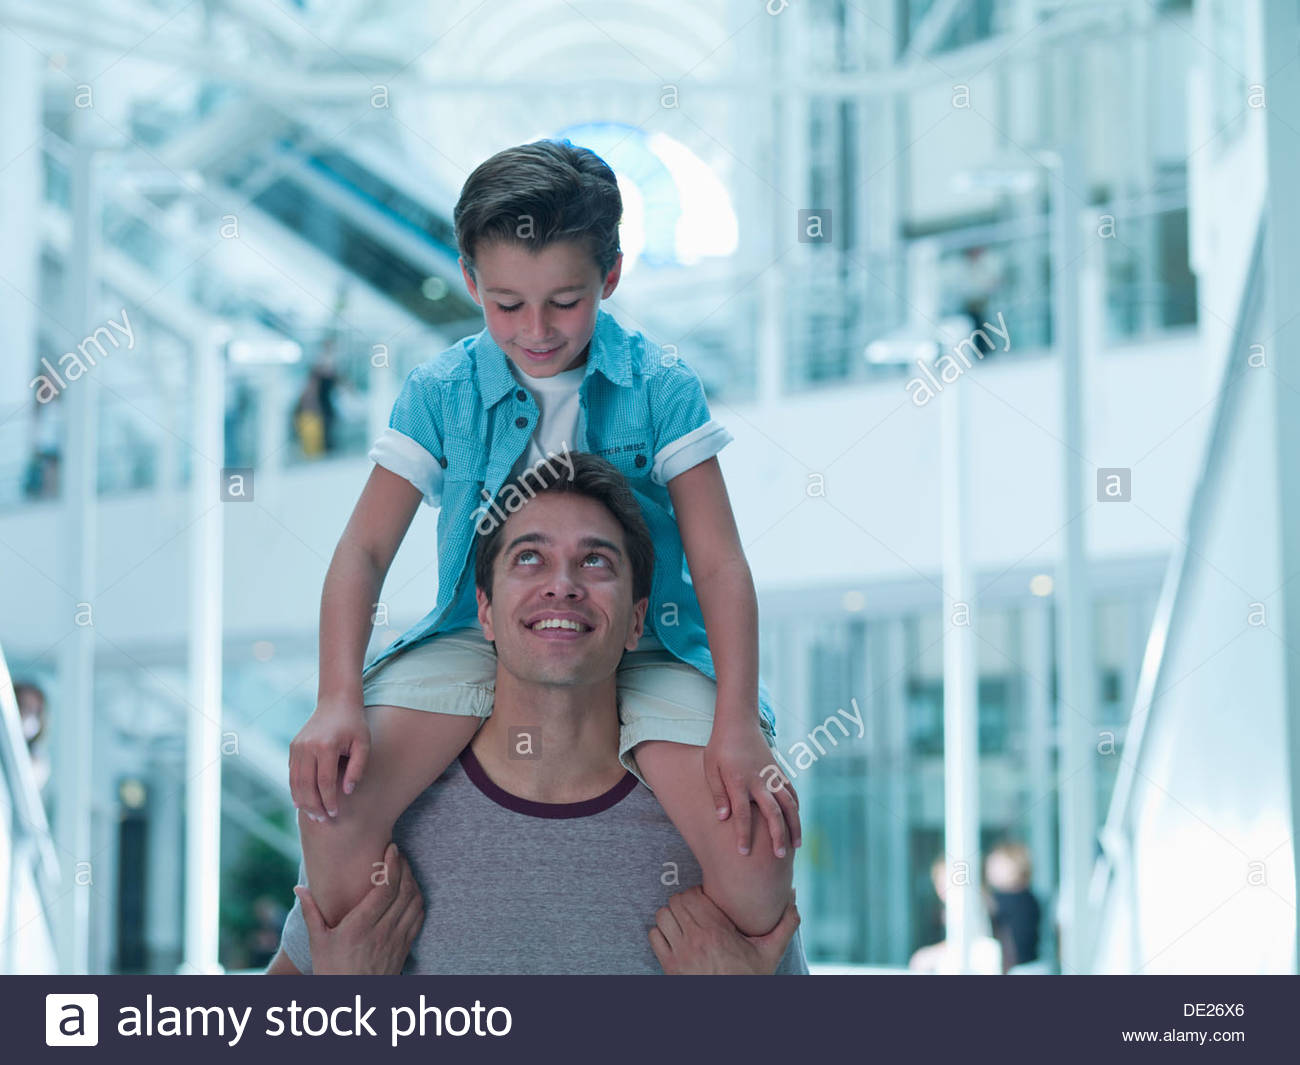 Father carrying son on shoulders in mall - Stock Image